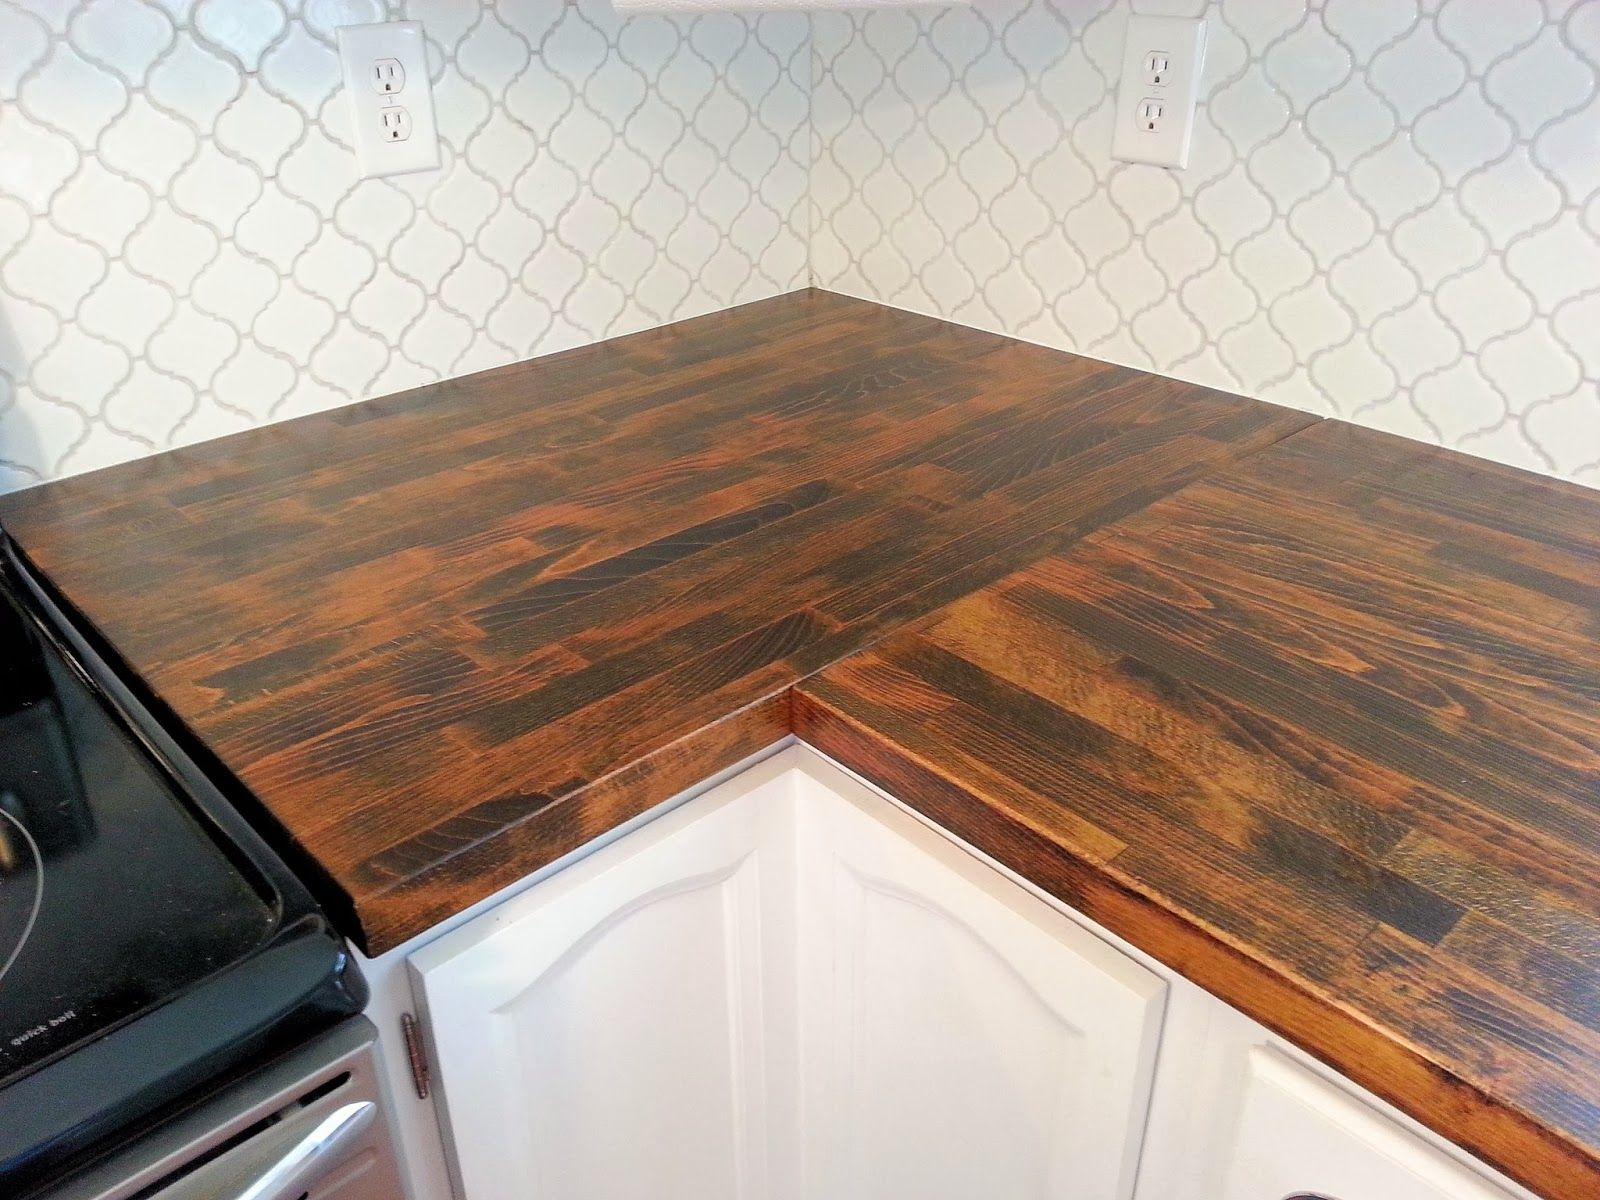 Gorgeous Butcher Block Countertops For Your Kitchen Remodel Tile Unique Home Depot Kitchen Countertops 2018